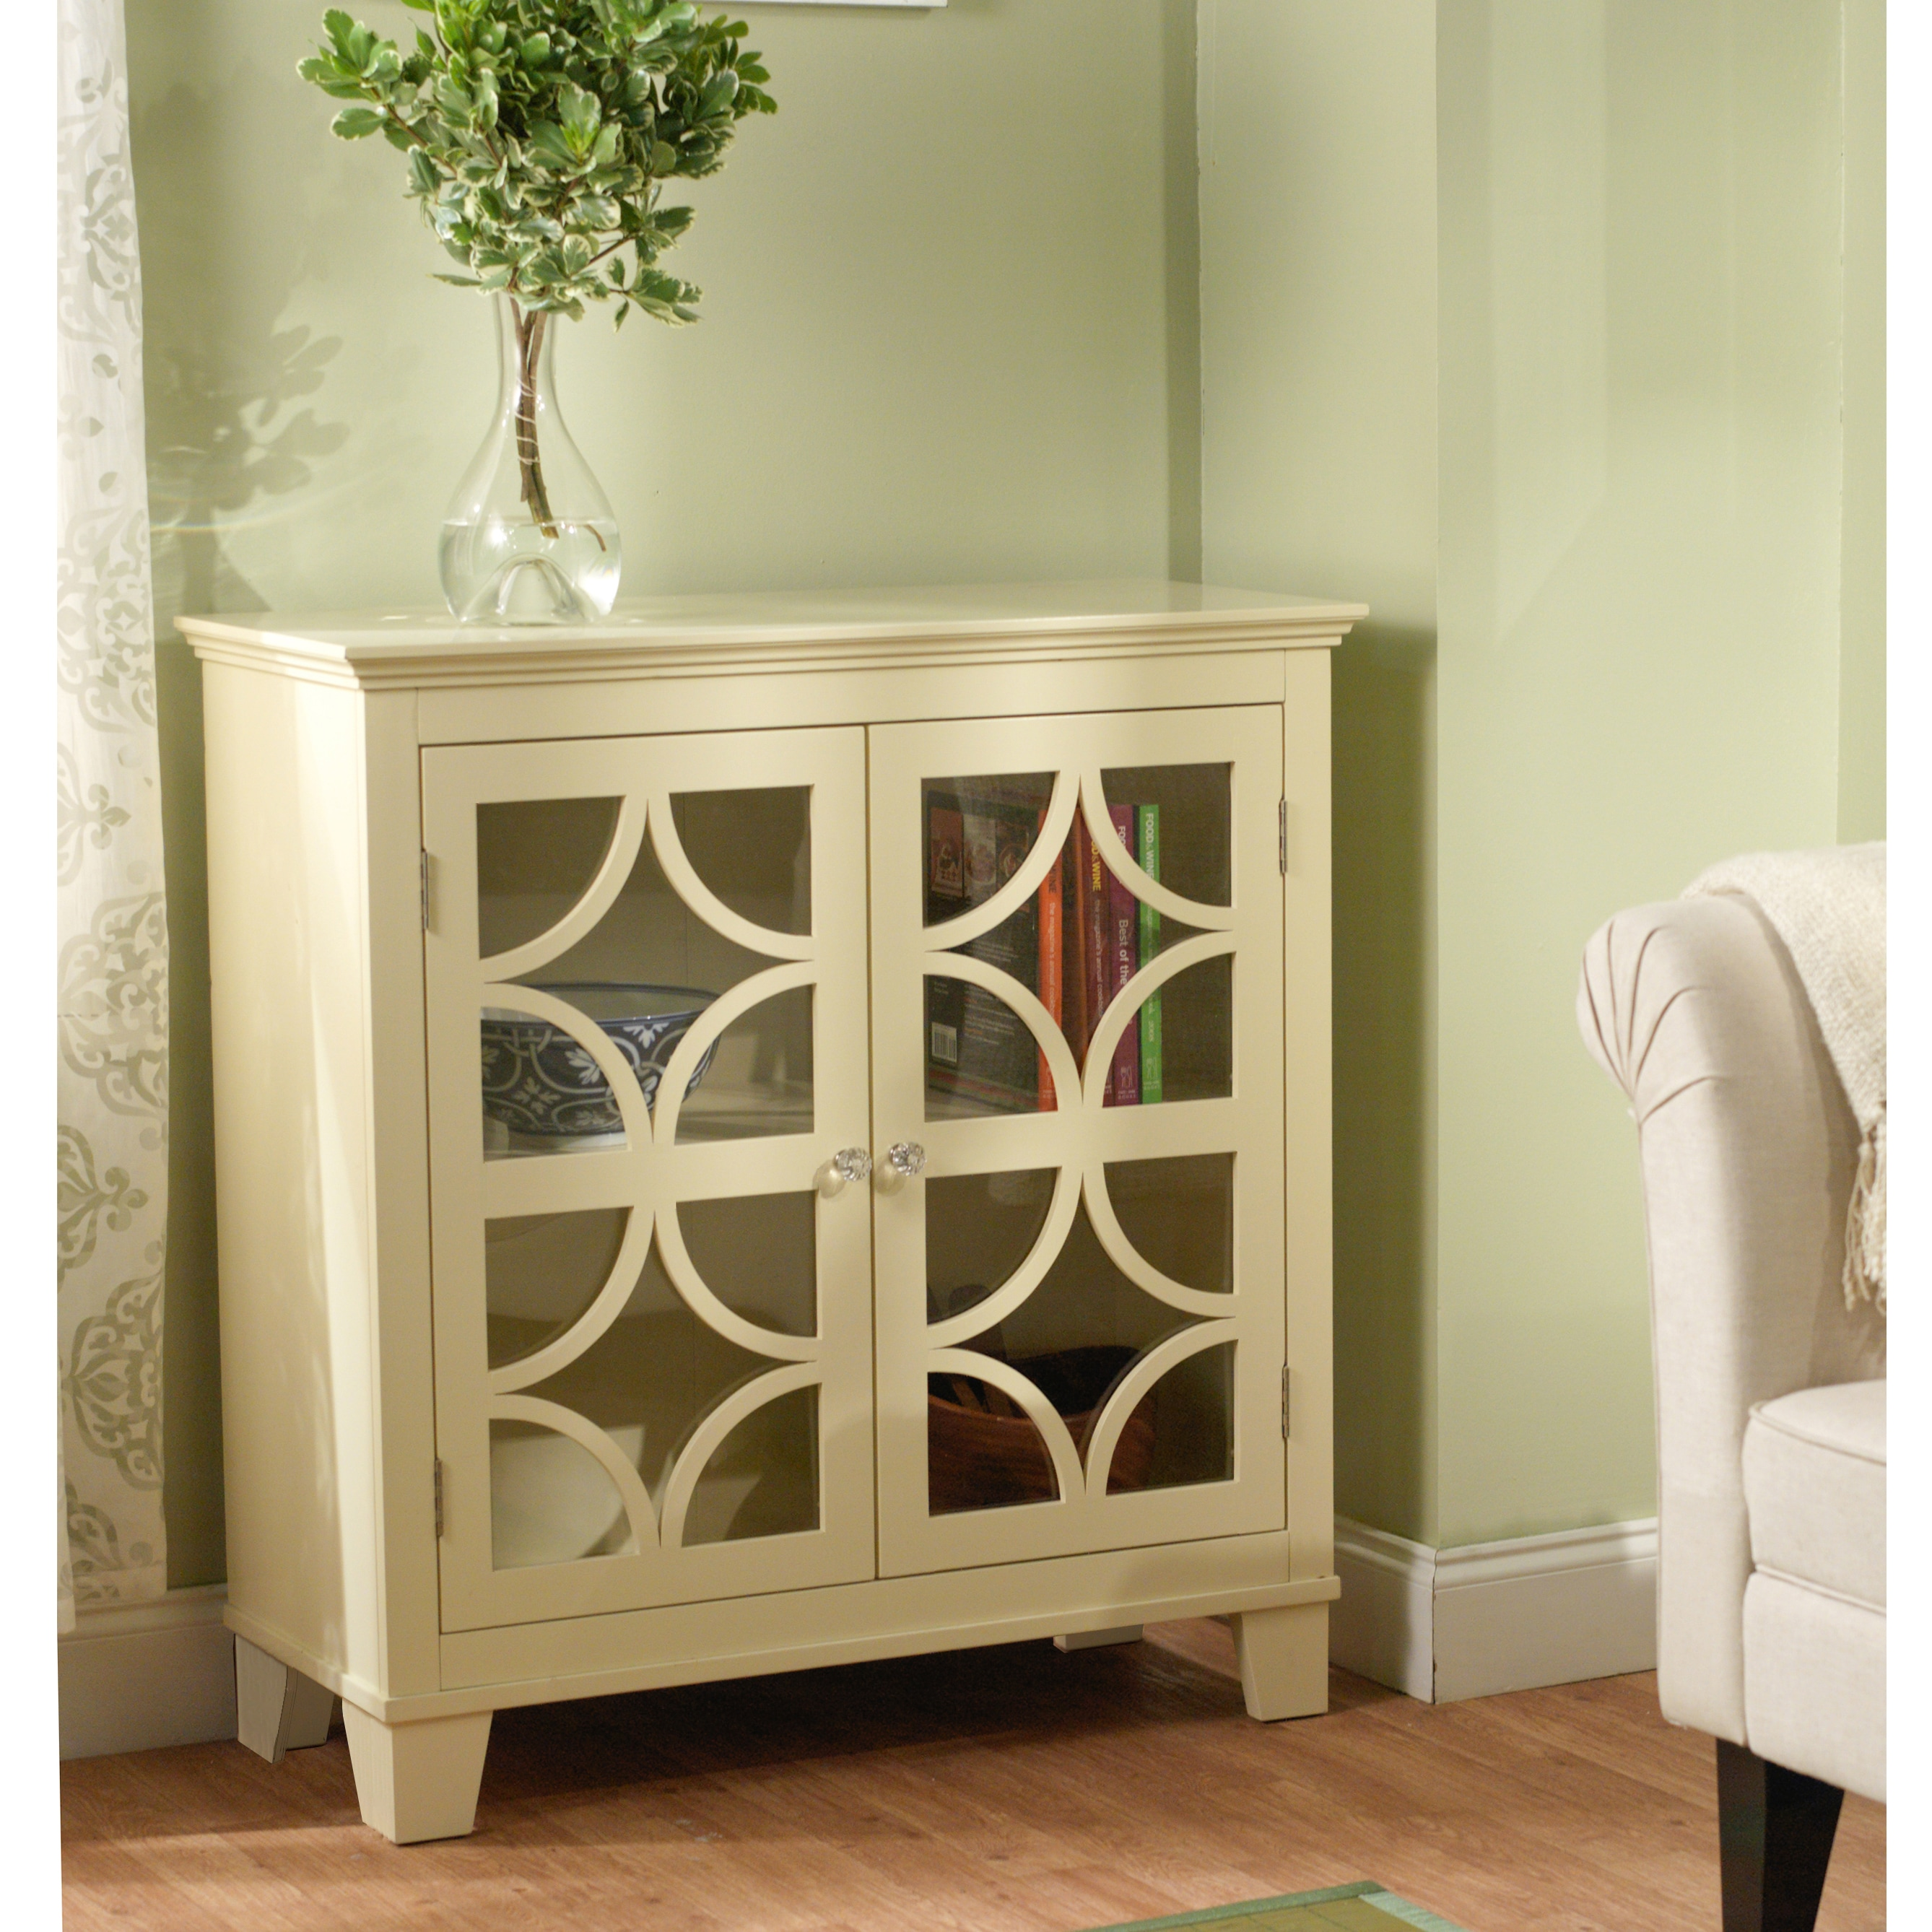 Dining Room Buffet Cabinet: Sydney Ivory Cabinet Buffet Storage Furniture Sideboard